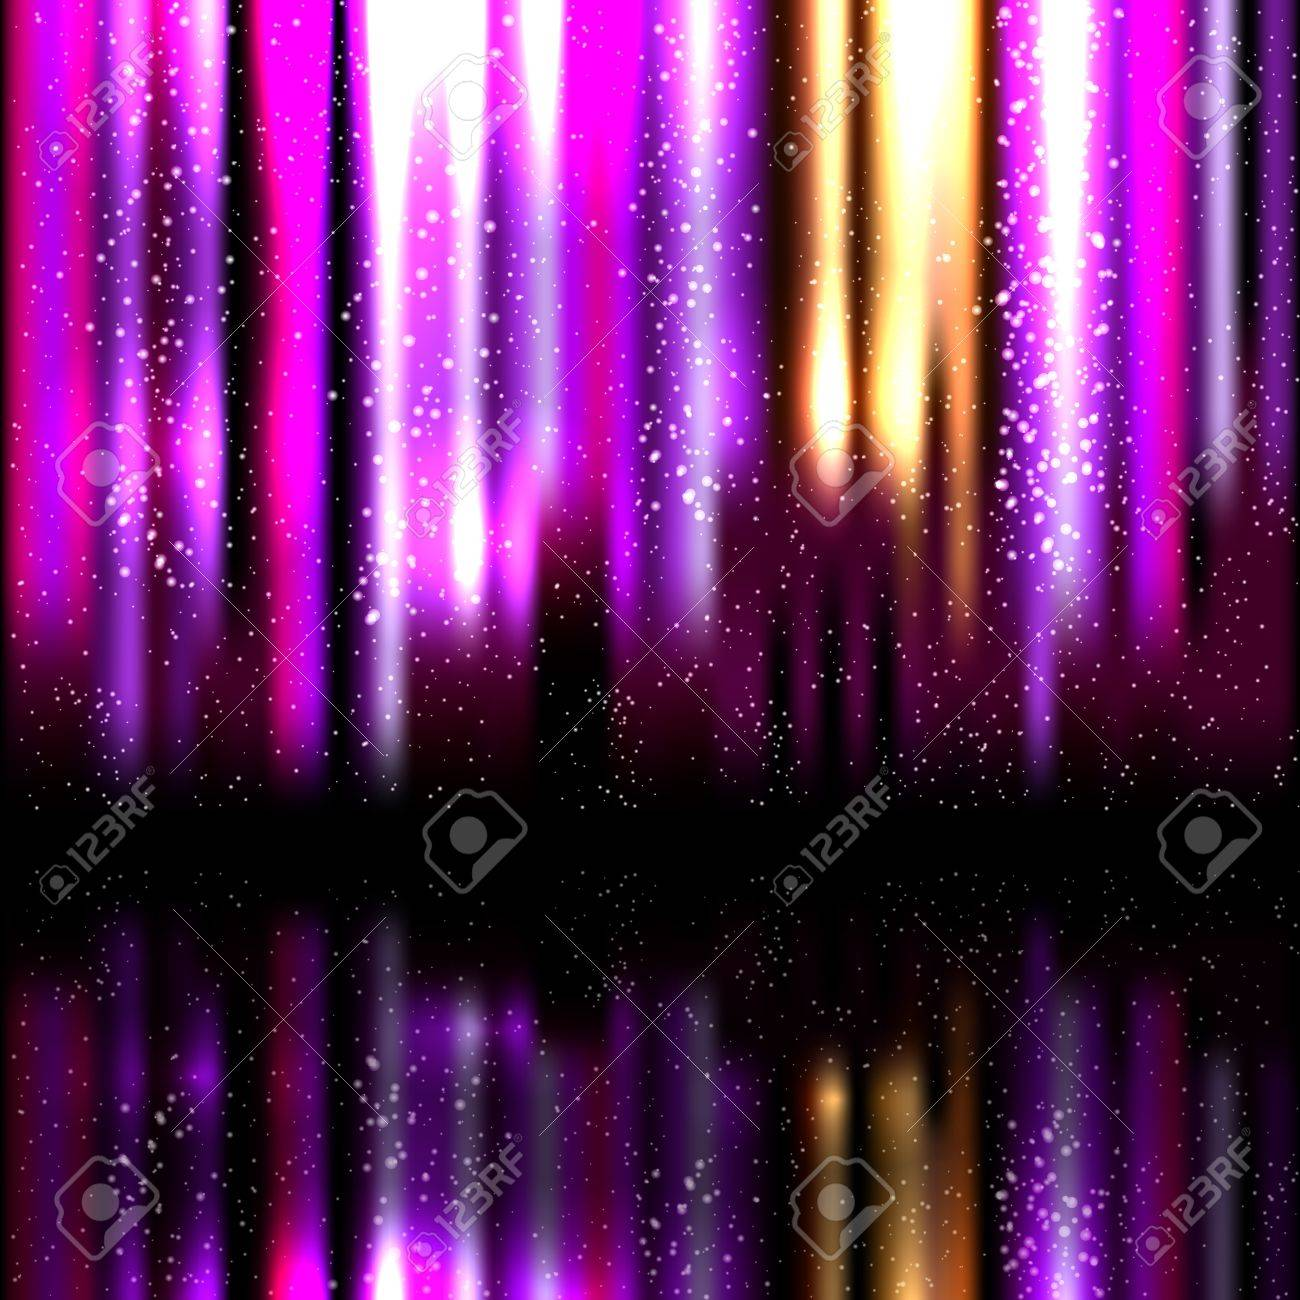 abstract glowing background. Vector illustration Stock Vector - 17660159